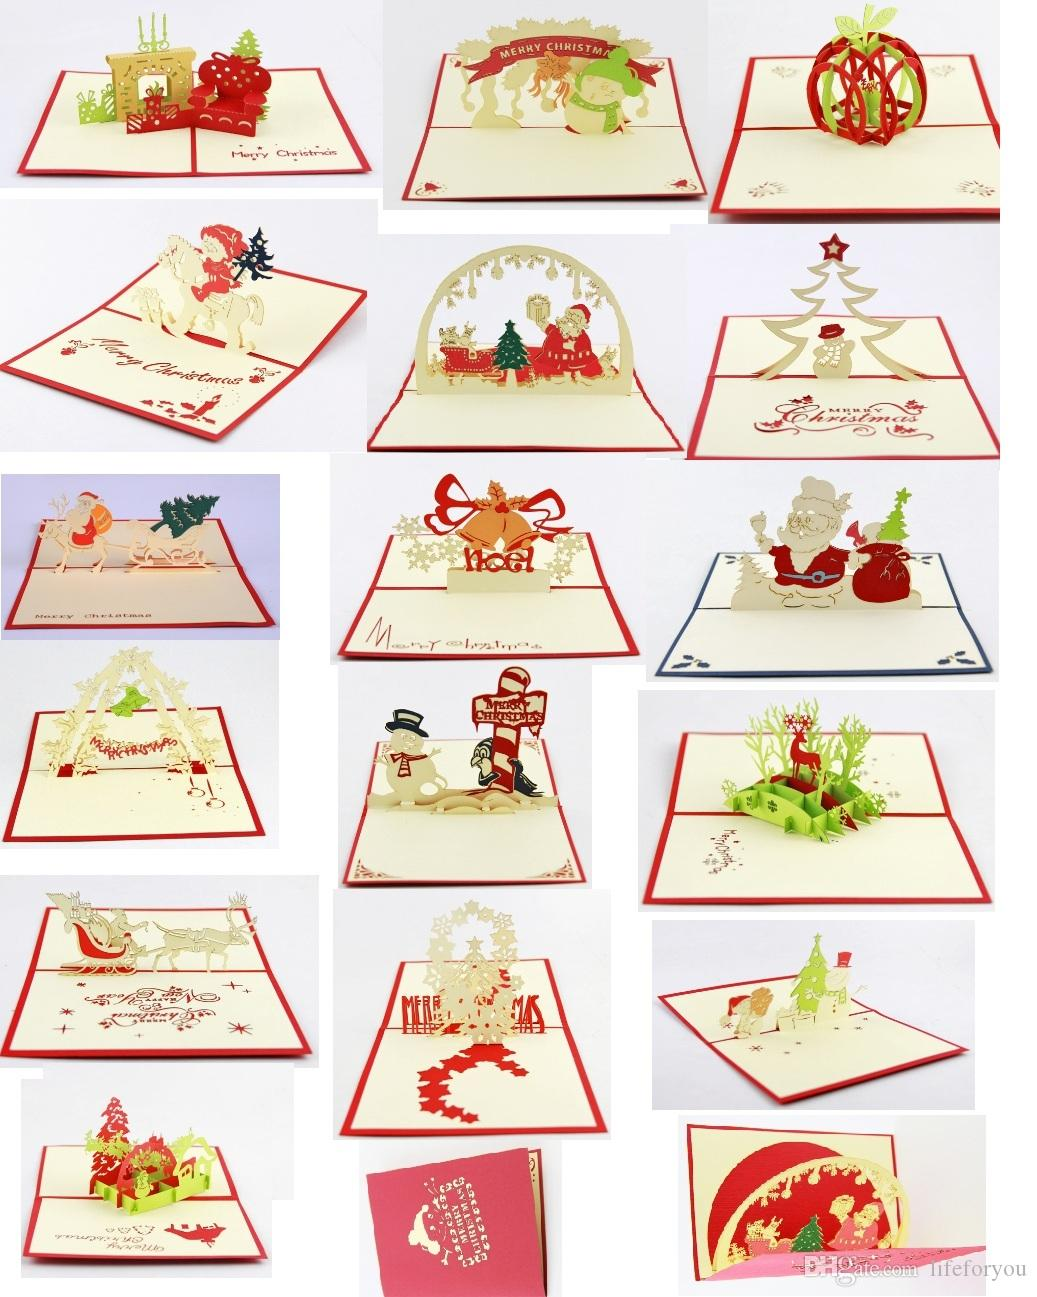 Christmas Card Greetings.Wholesale 3d Greeting Card Christmas Greeting Card Christmas Decorations Pop Up Greeting Card 16 Items Mixed Birthday Greetings Cards Birthday Online